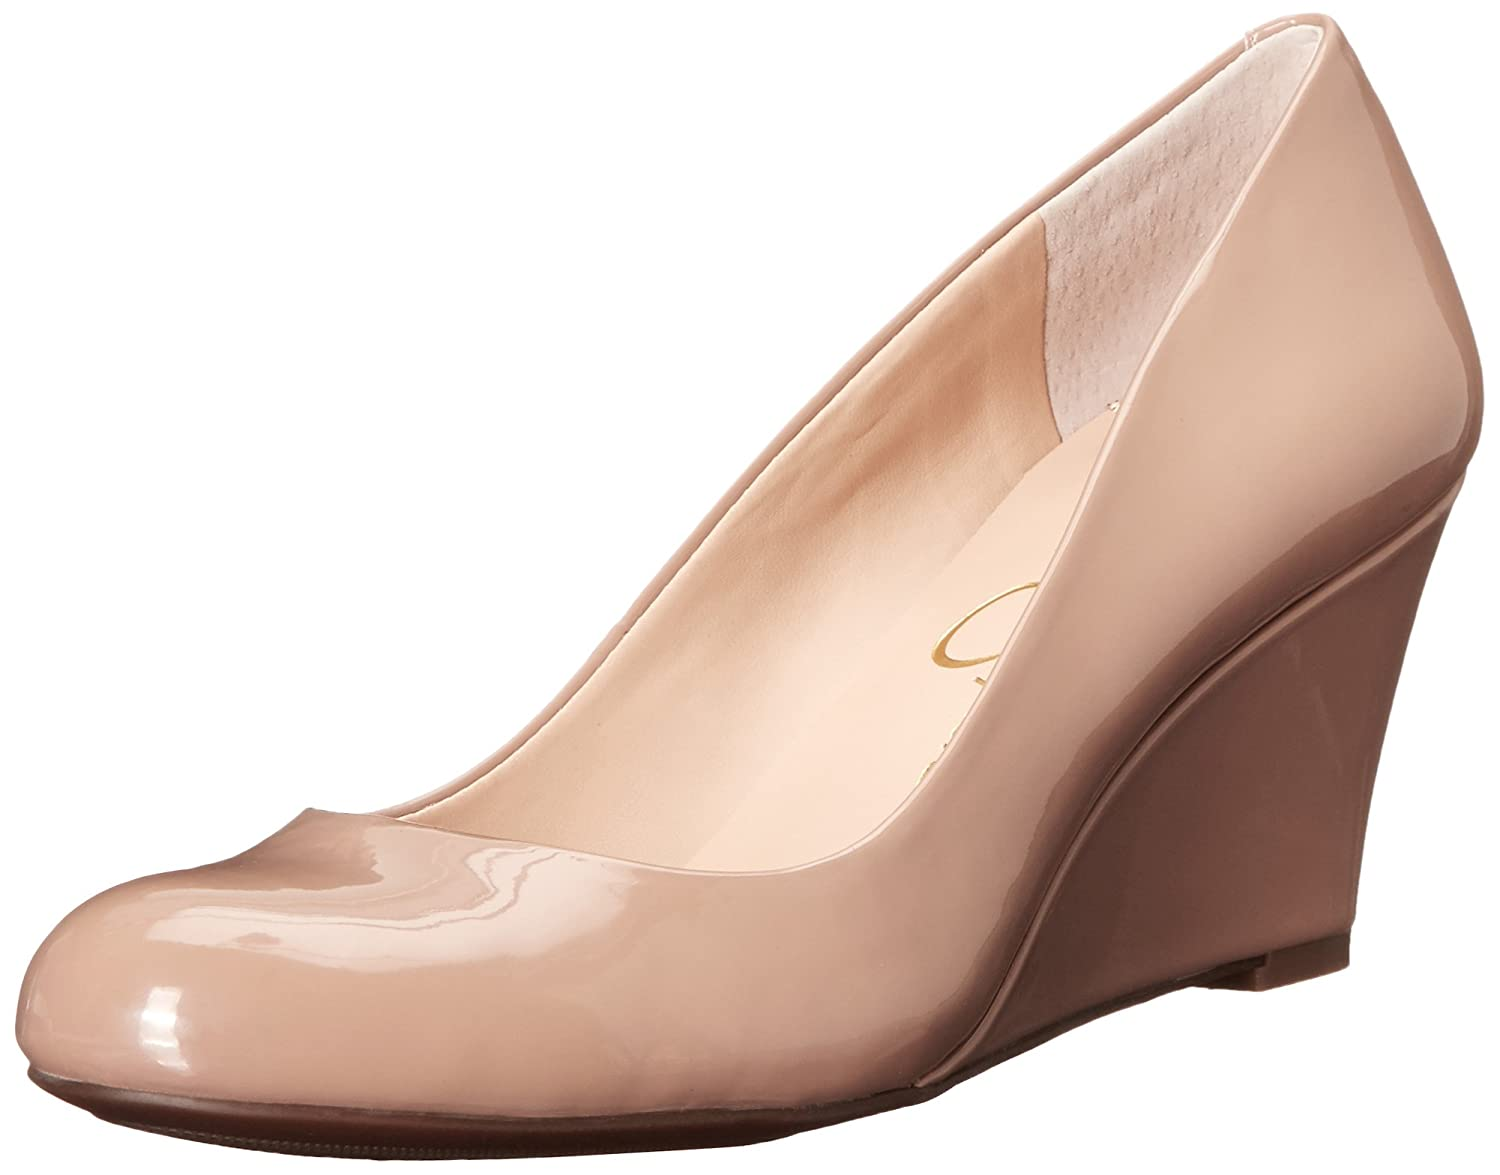 Jessica Simpson Footwear Women Sampson Wedge Pump B015564U7W 6.5 B(M) US|Nude